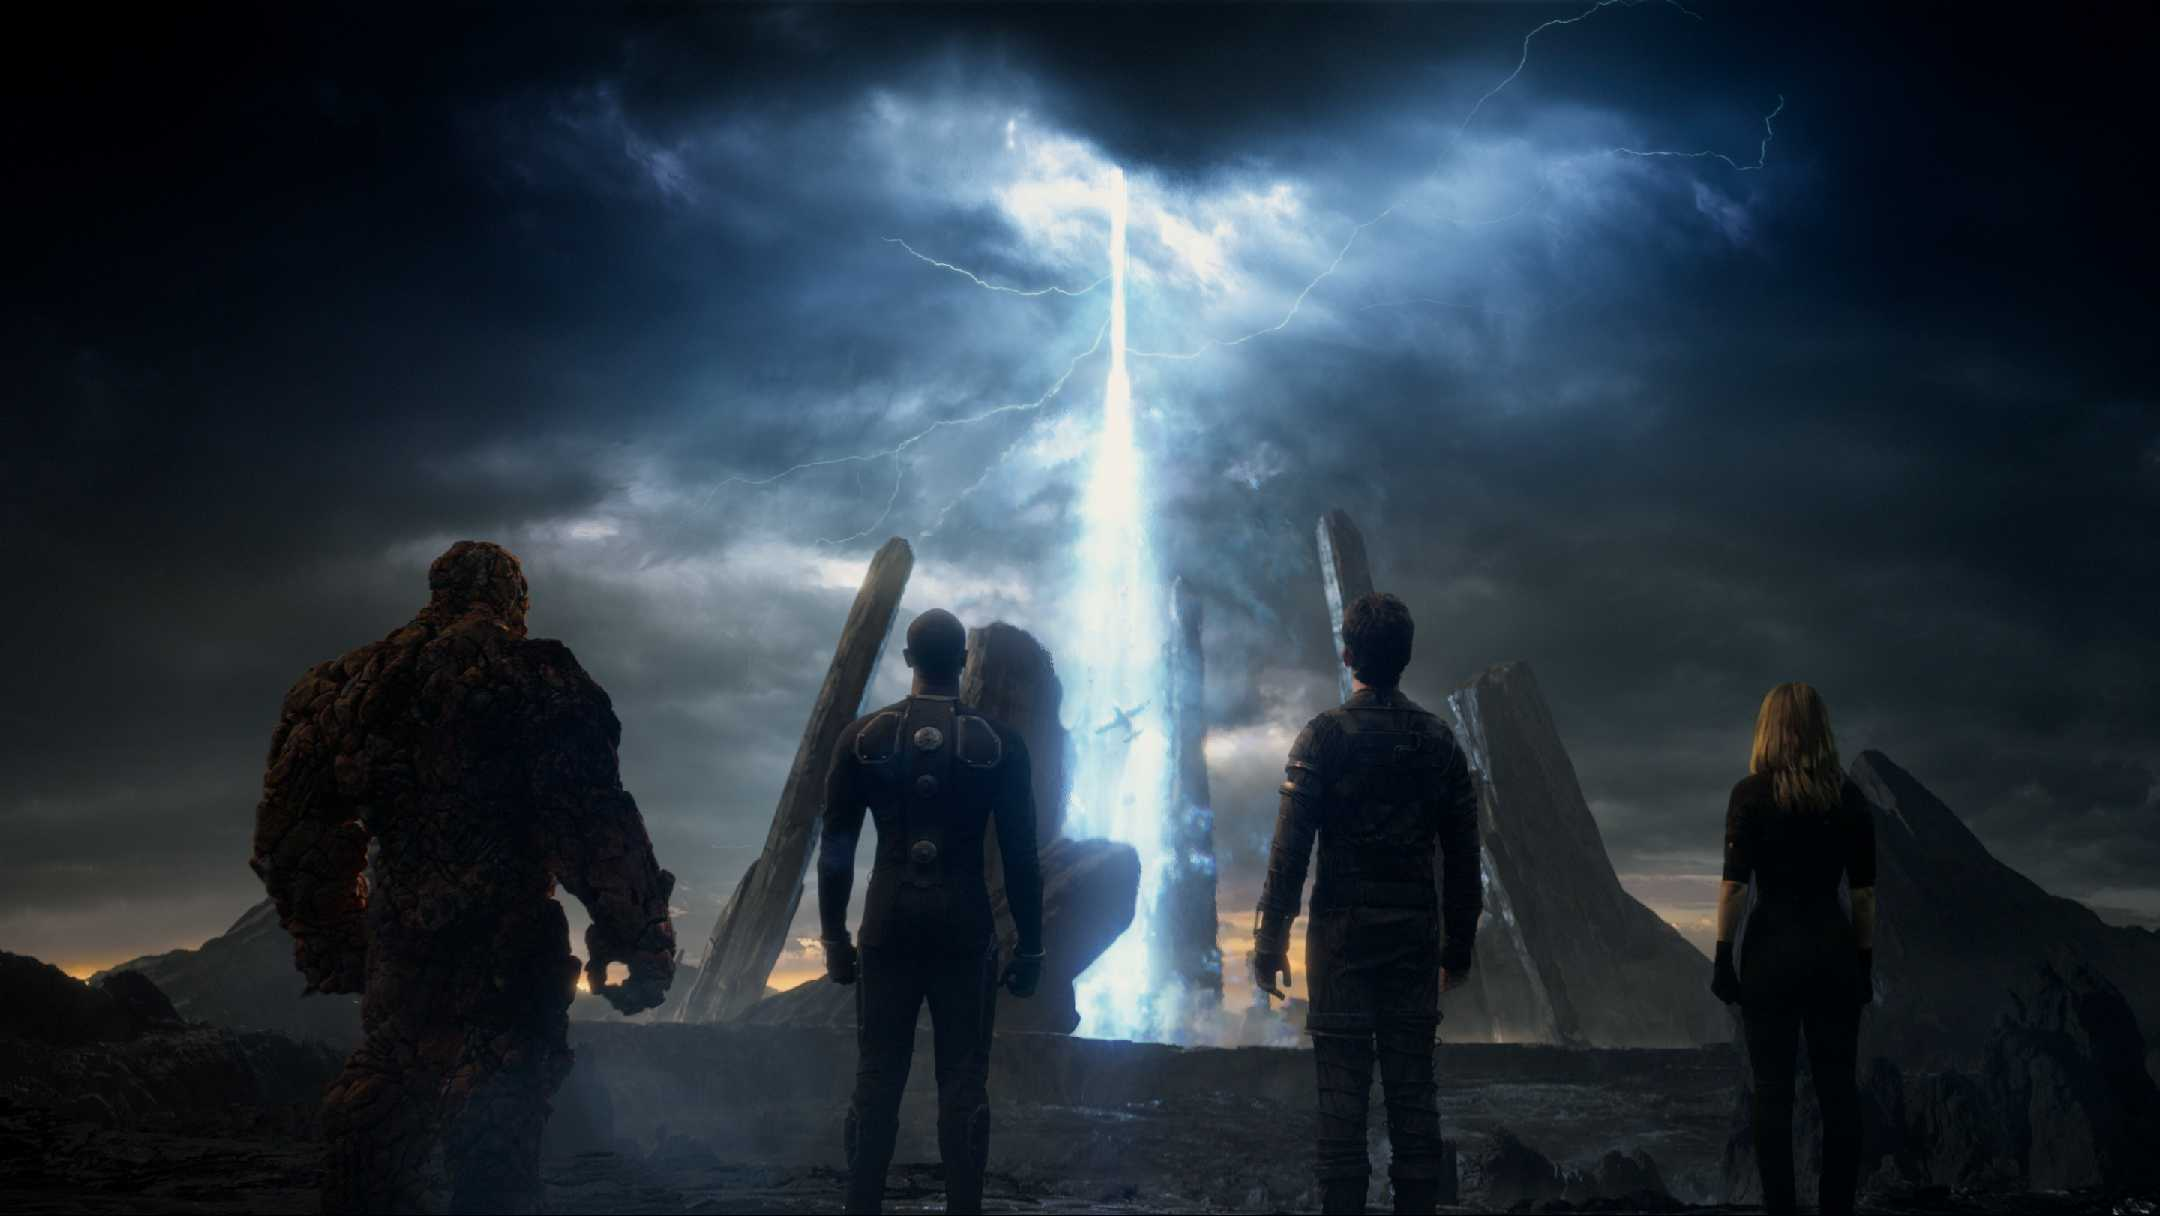 1st Trailer and Poster for Josh Trank's 'Fantastic Four' unveiled!